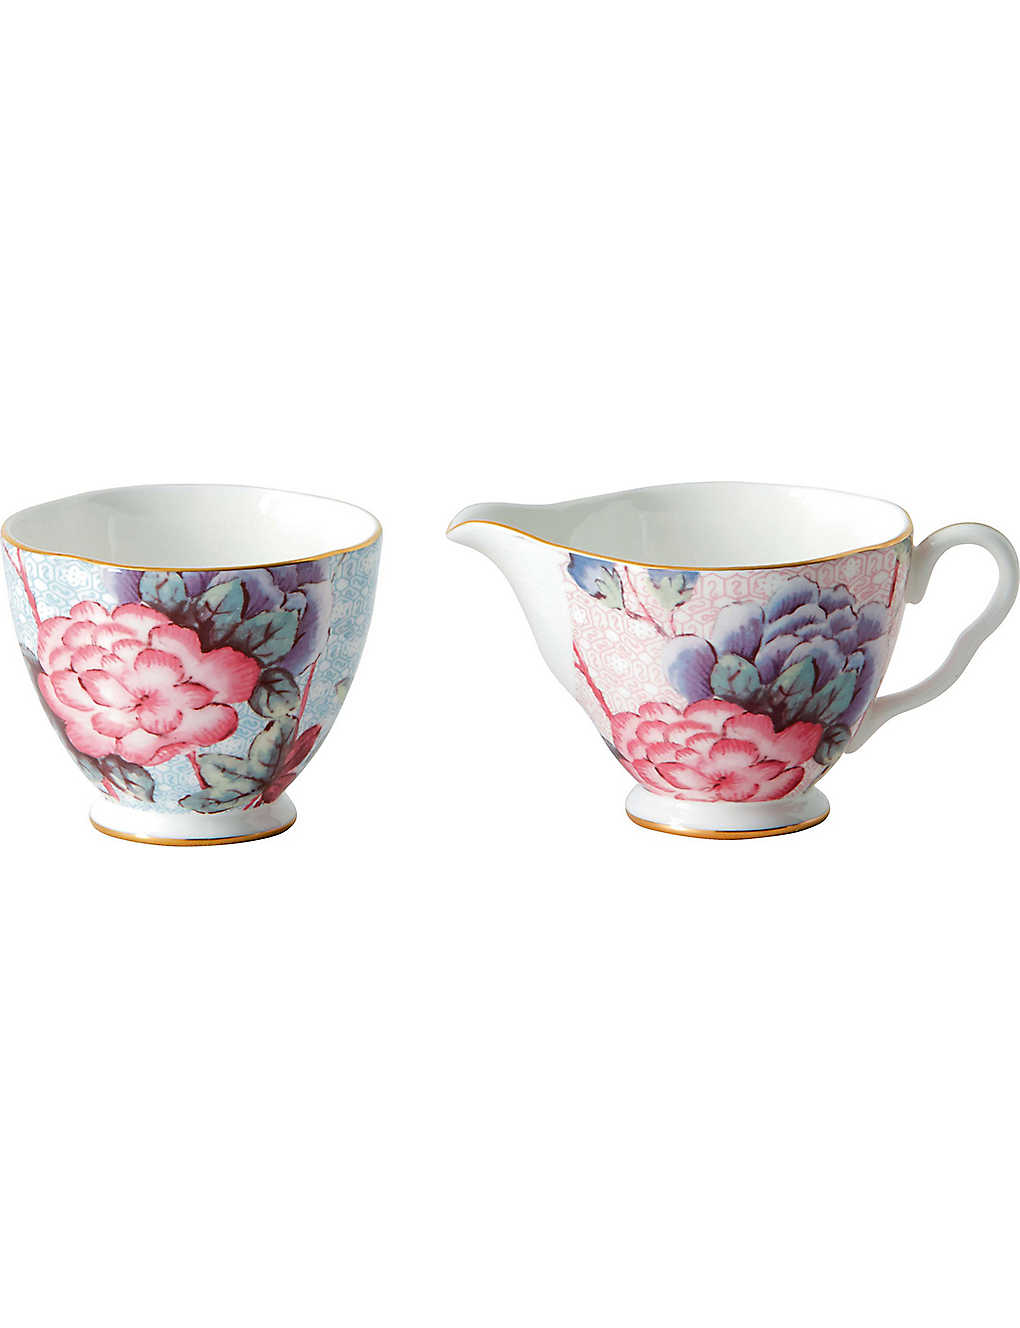 WEDGWOOD: Cuckoo fine bone china sugar bowl and cream jug